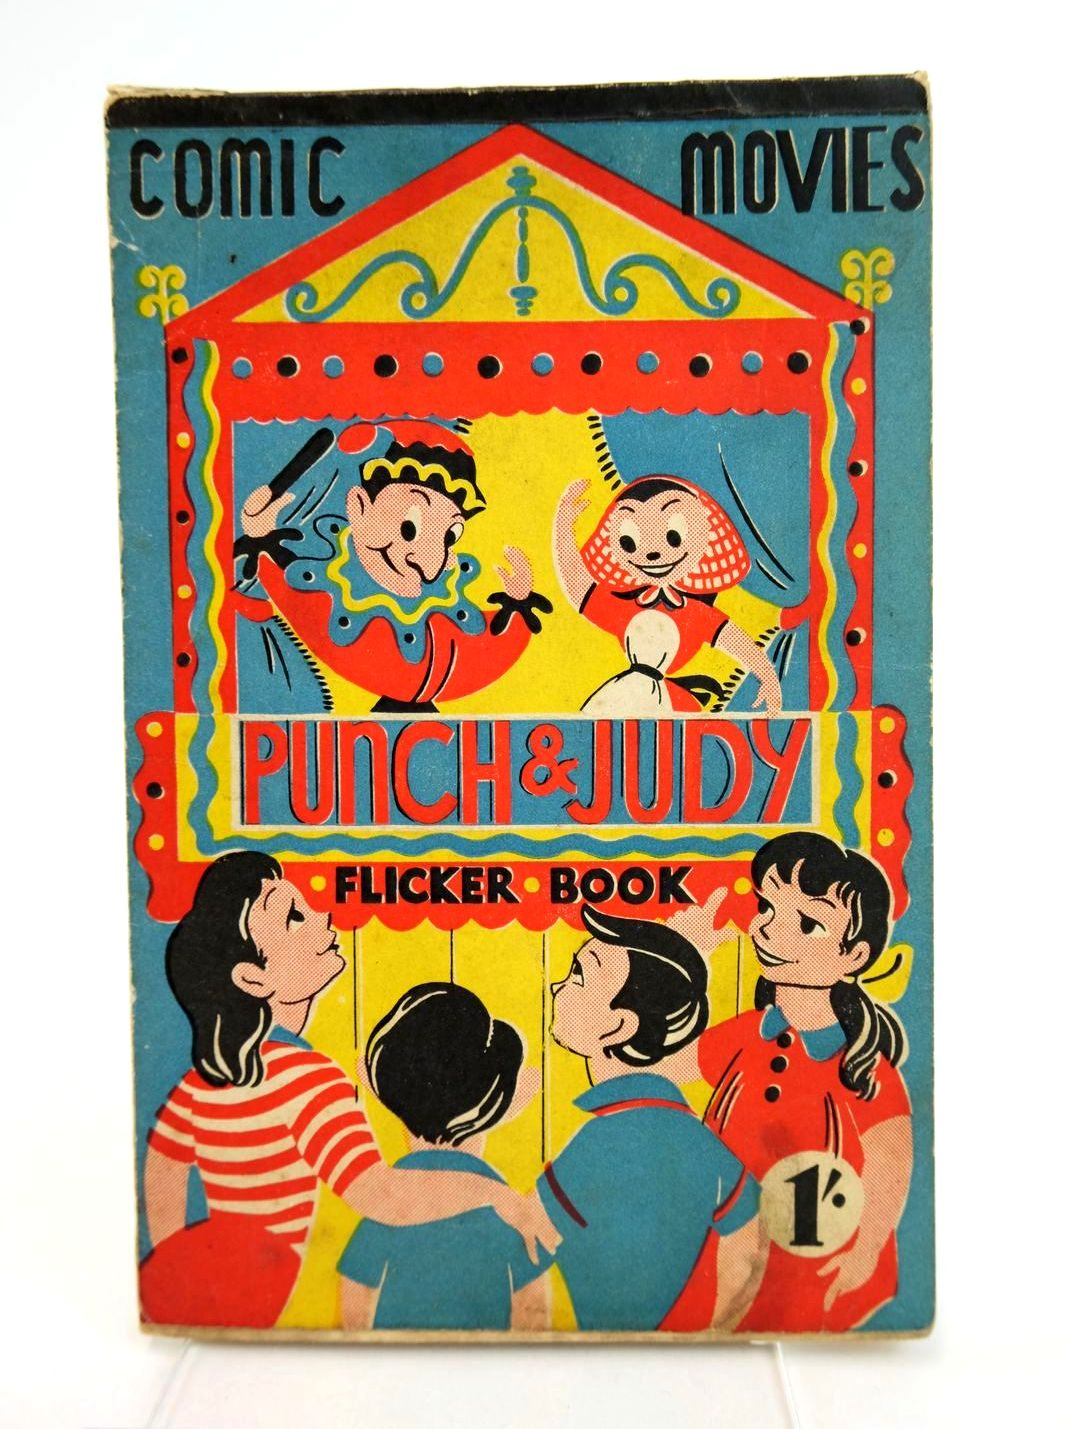 Photo of COMIC MOVIES FLICKER BOOK - PUNCH & JUDY illustrated by Williams, E.C. published by Books And Pictures Publishers Limited (STOCK CODE: 1318767)  for sale by Stella & Rose's Books